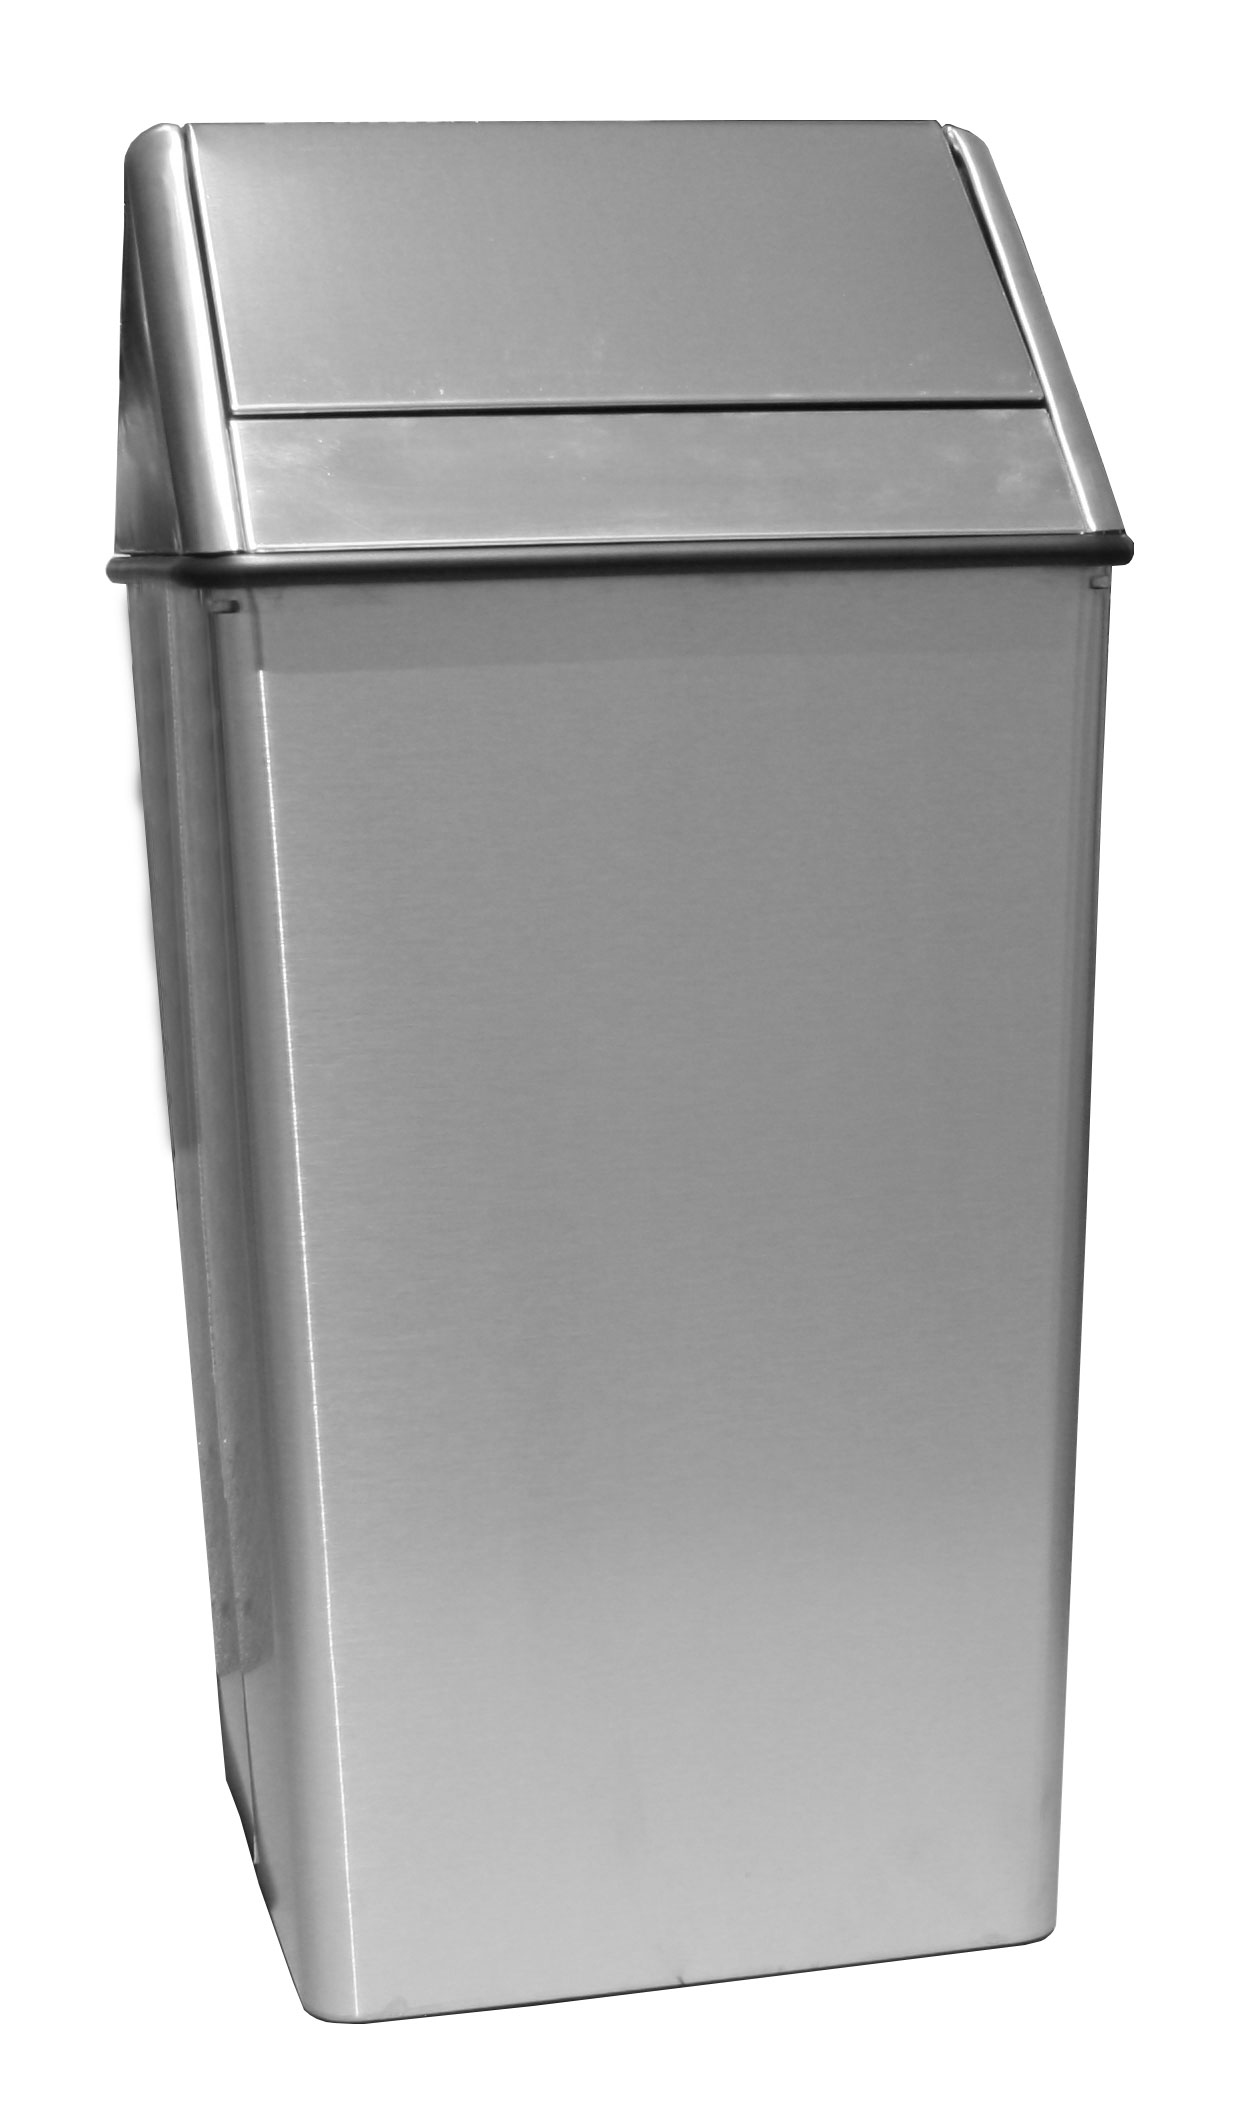 Indoor Garbage Cans Witt Industries 1411htss 21 Gallon Indoor Trash Can W